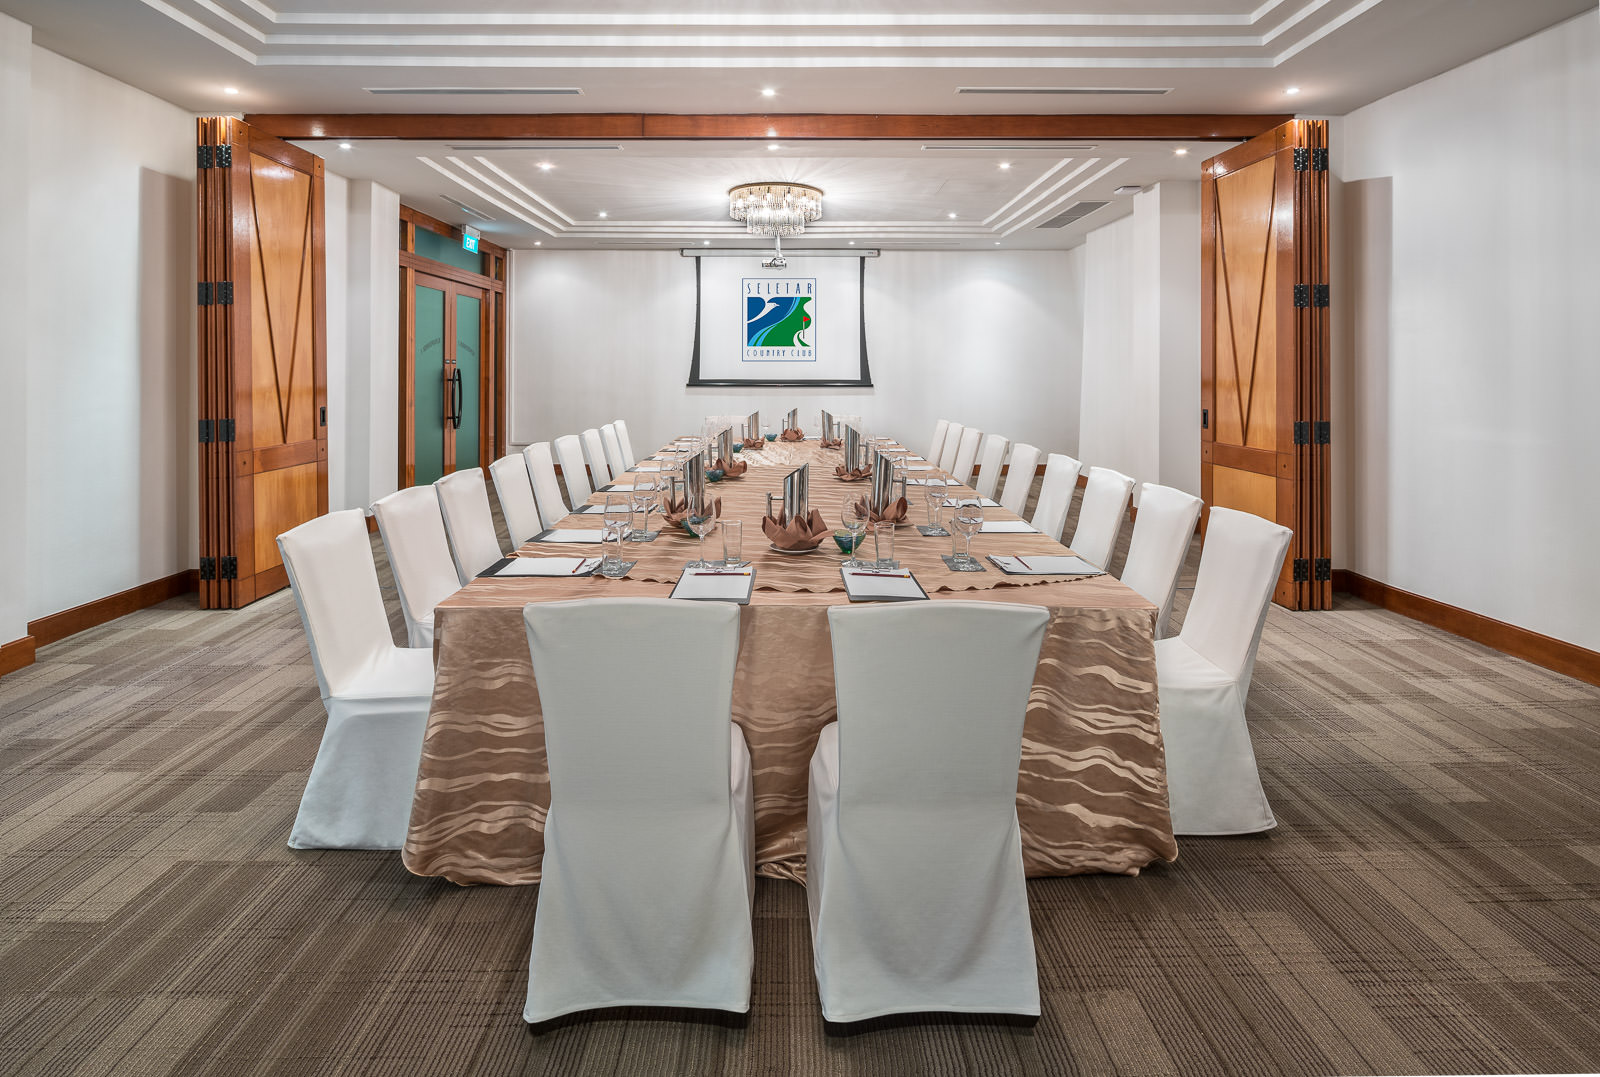 Interior photography of the seletar country club in singapore showing a meeting room with a long table and chairs with pitchers and projector